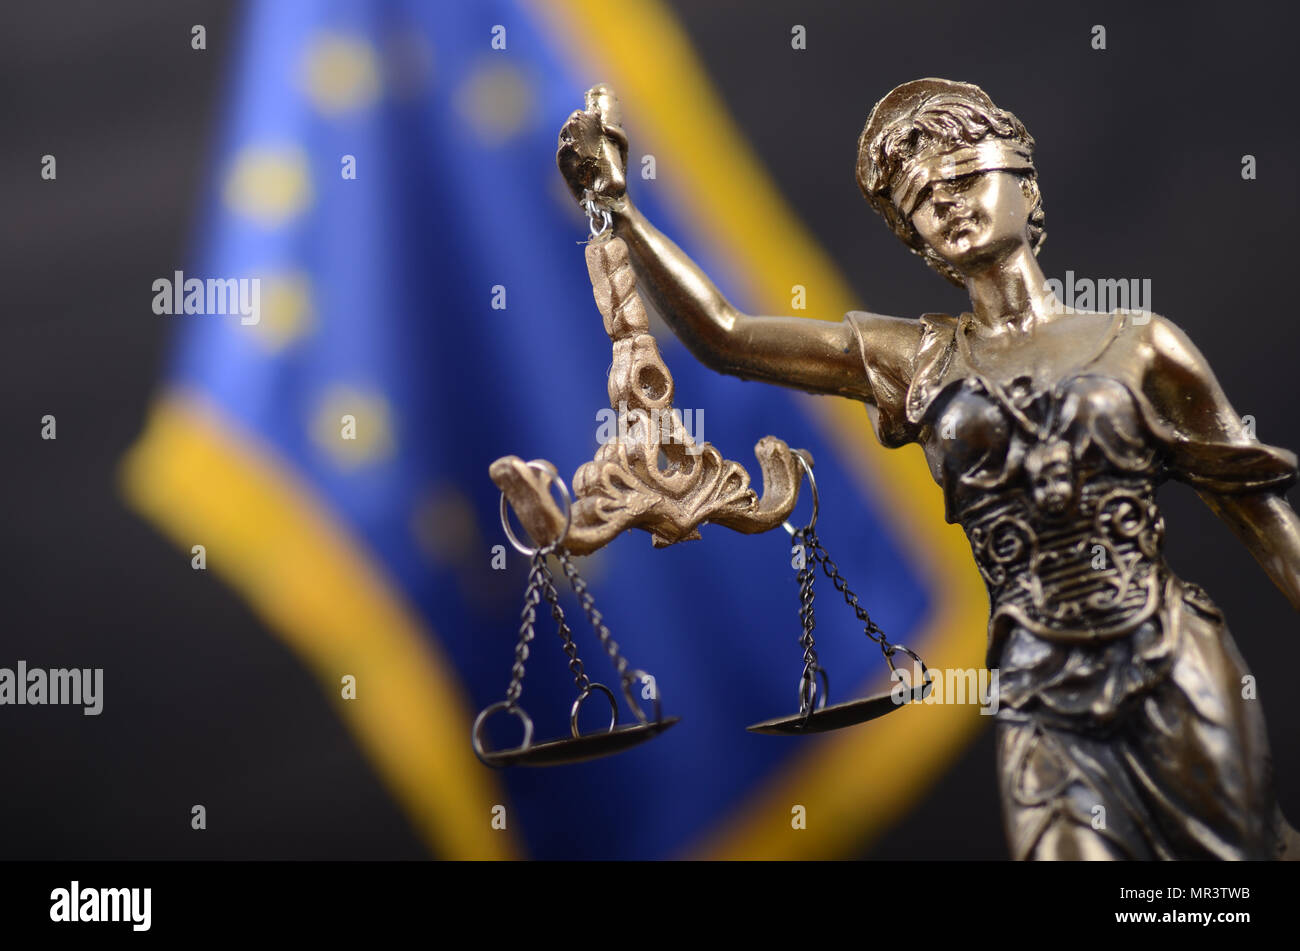 Law and Justice, Legality concept, Scales of Justice, Lady Justice in front of the European Union flag in the background. - Stock Image